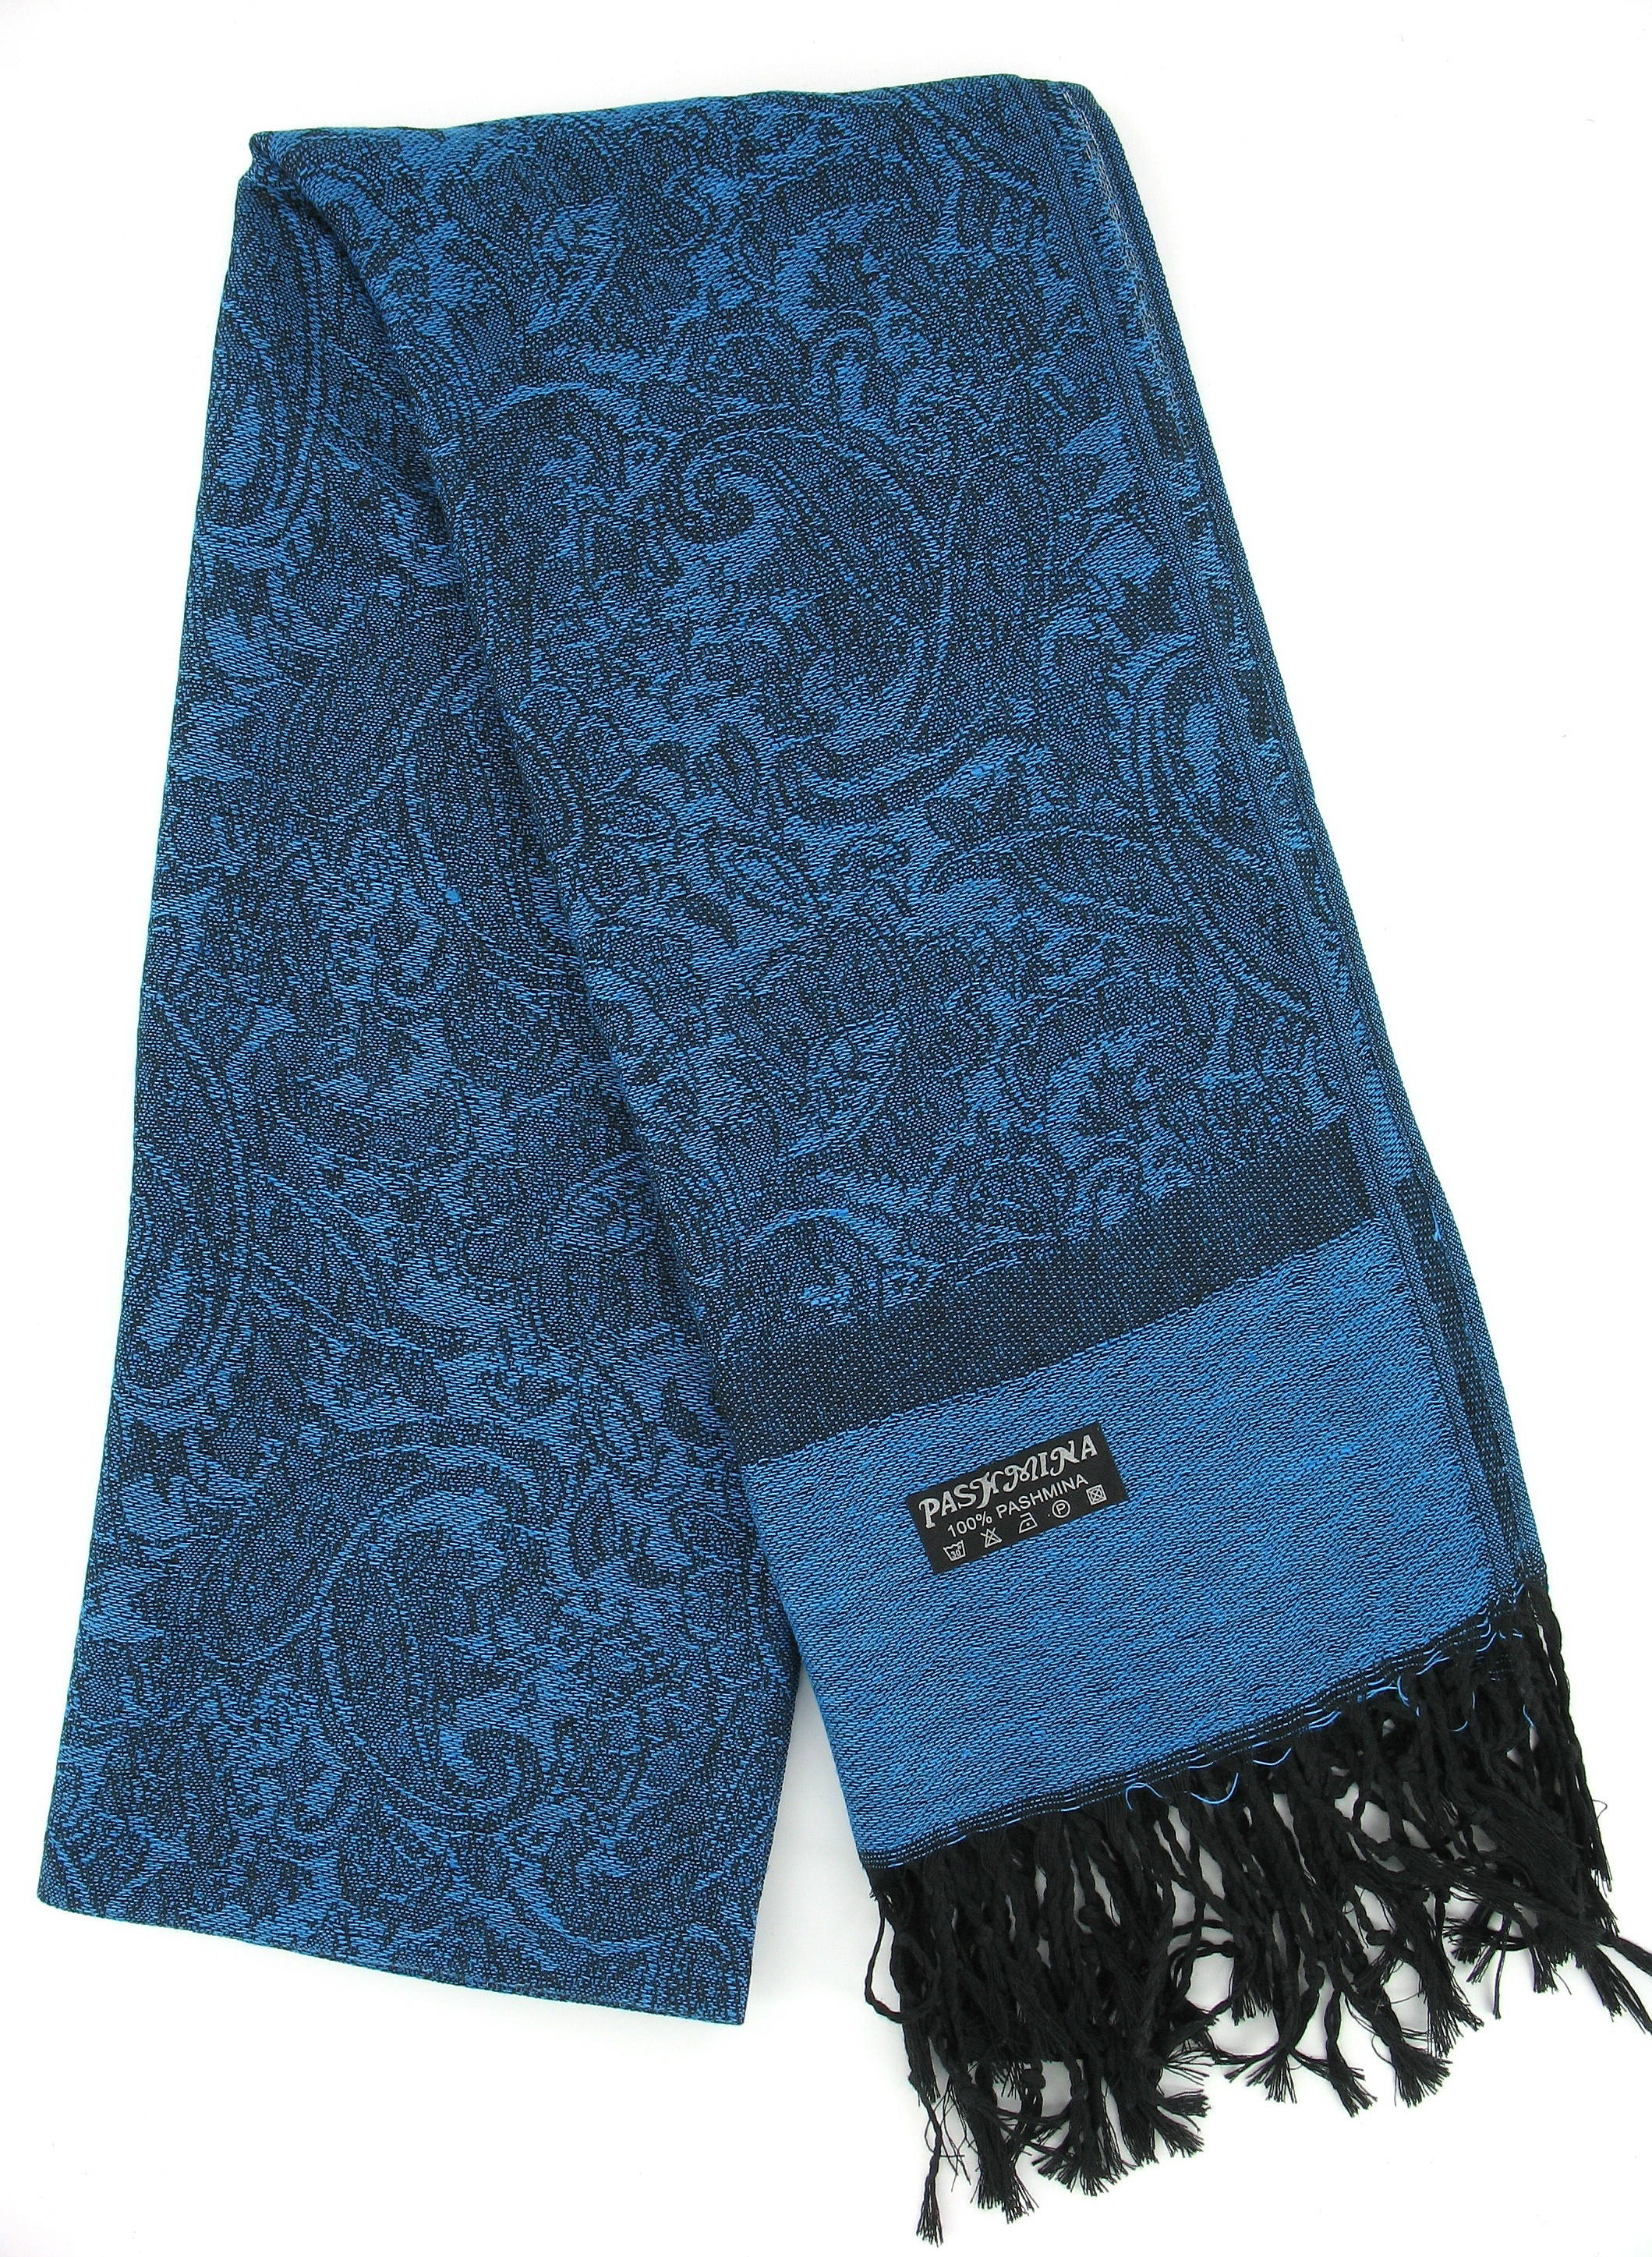 Scarf in Midnight Blue